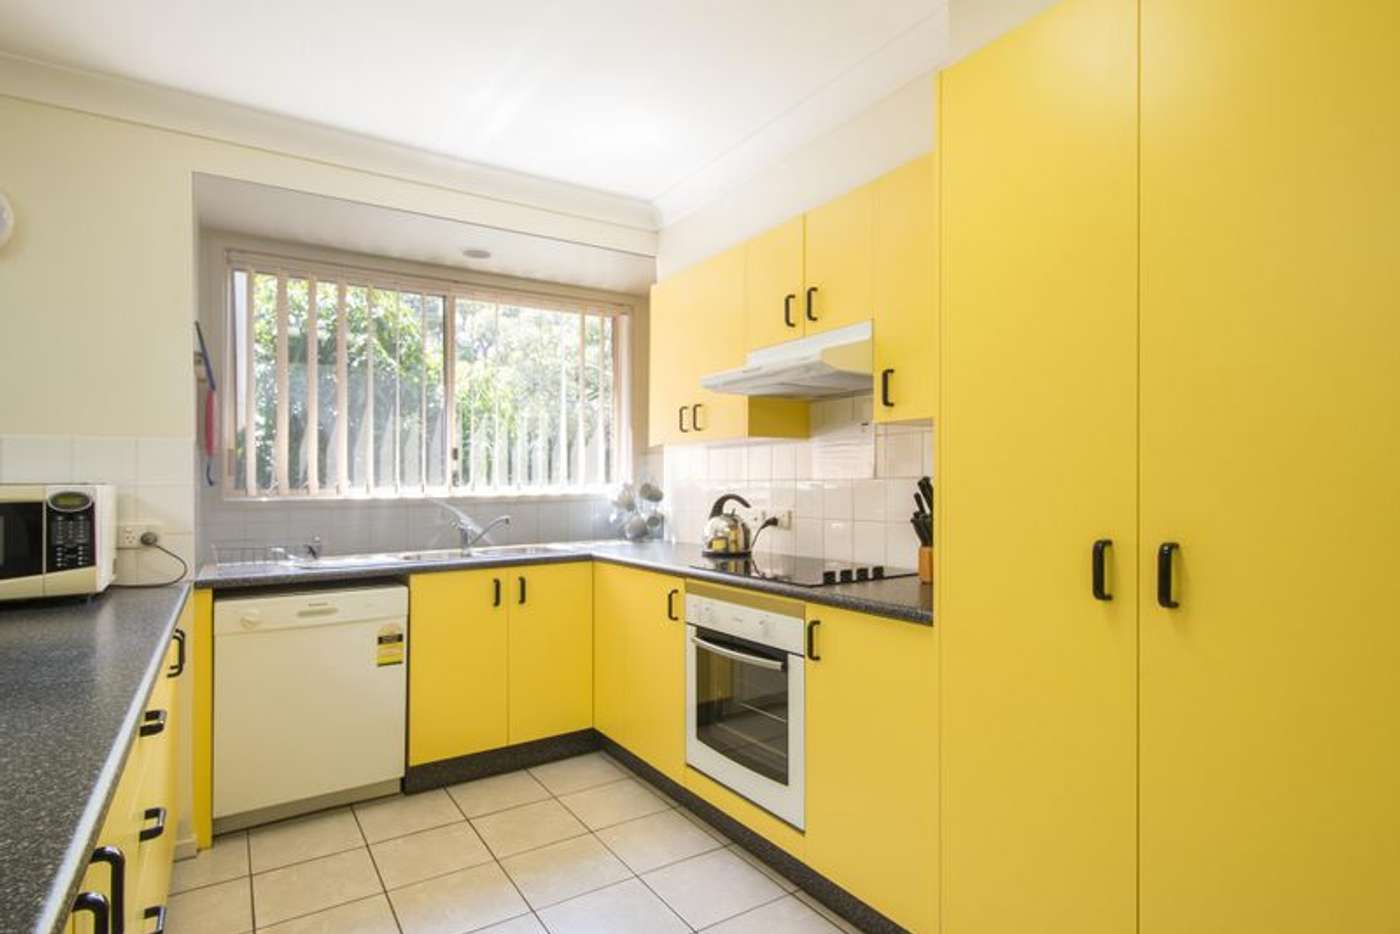 Seventh view of Homely house listing, 6 Vere Street, Iluka NSW 2466